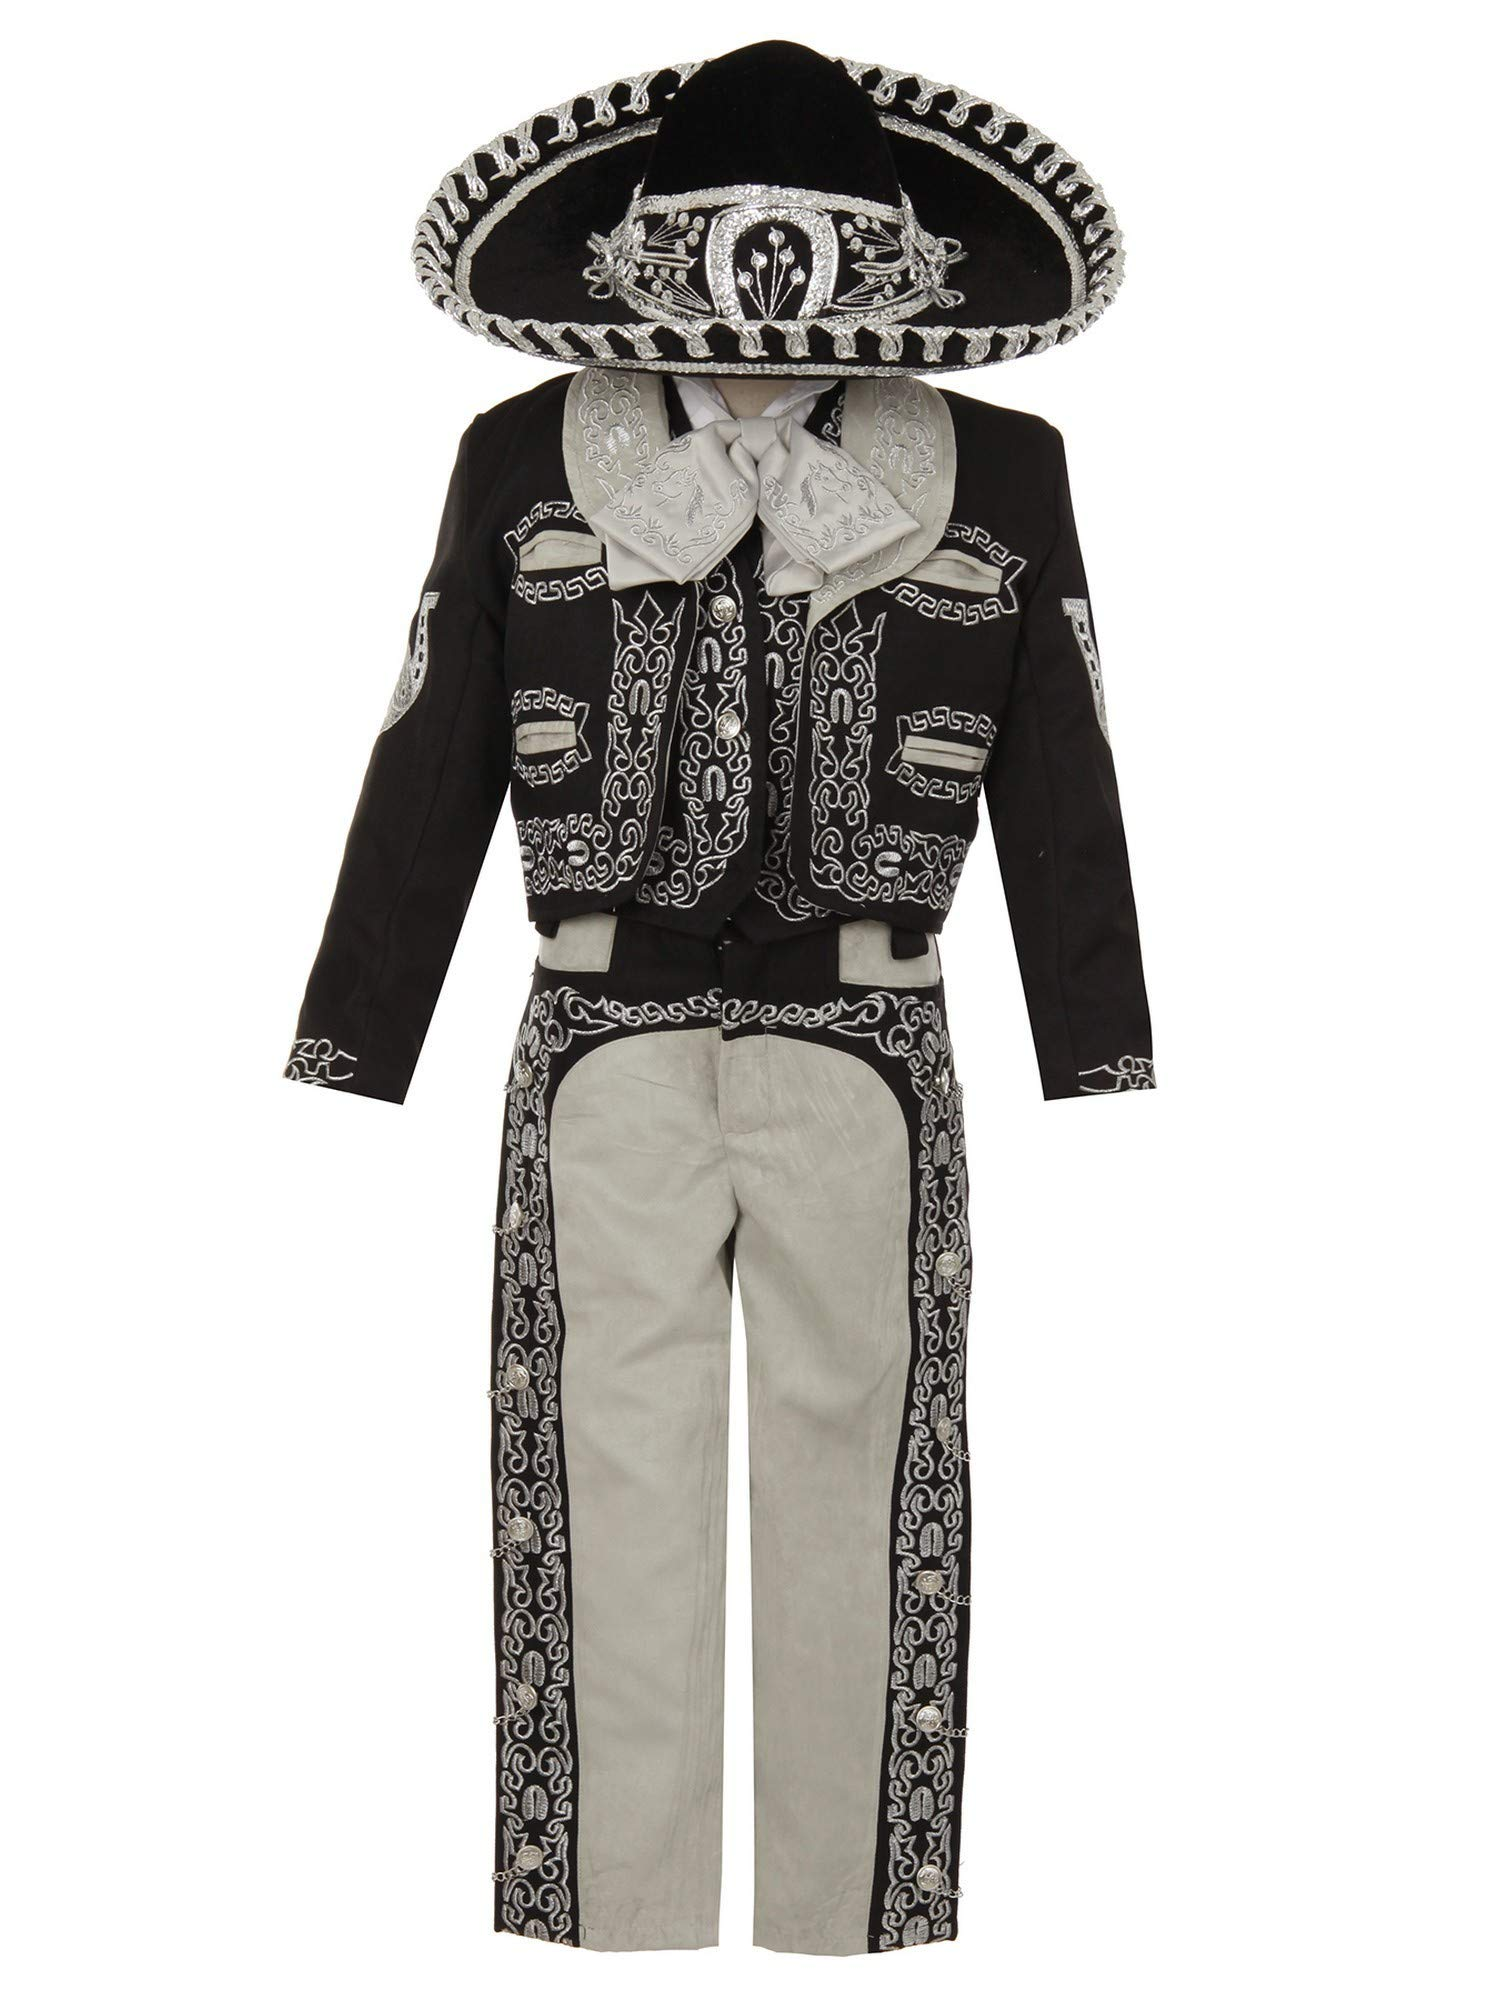 Rain Kids Baby Boys Black Silver Horse Embroidery Elegant 6 Pc Charro Suit 12M by The Rain Kids